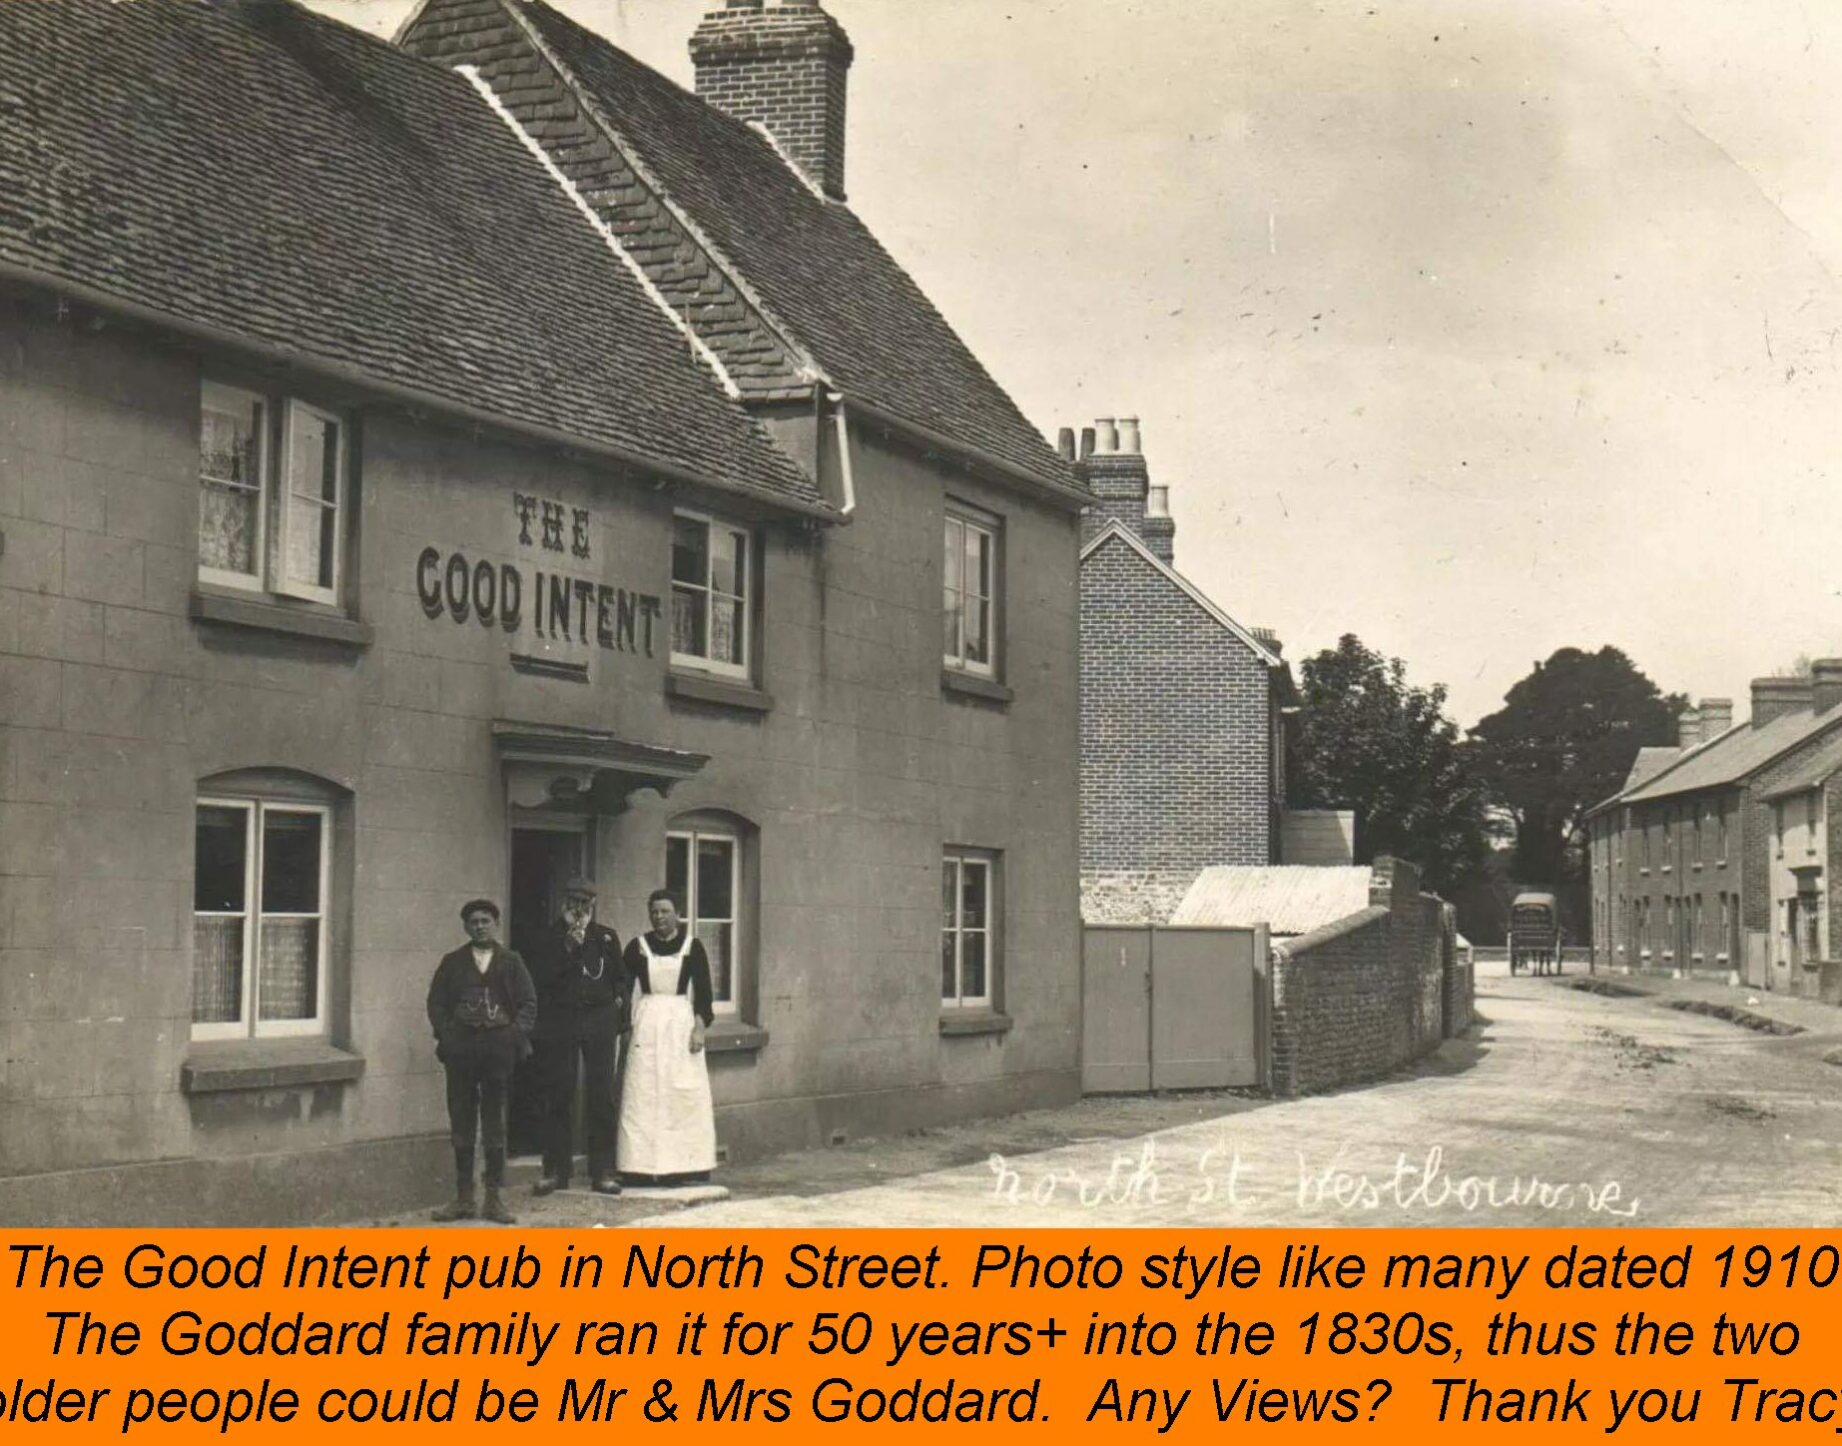 WESTBOURNE HISTORY PHOTO, GOOD INTENT GODDARD